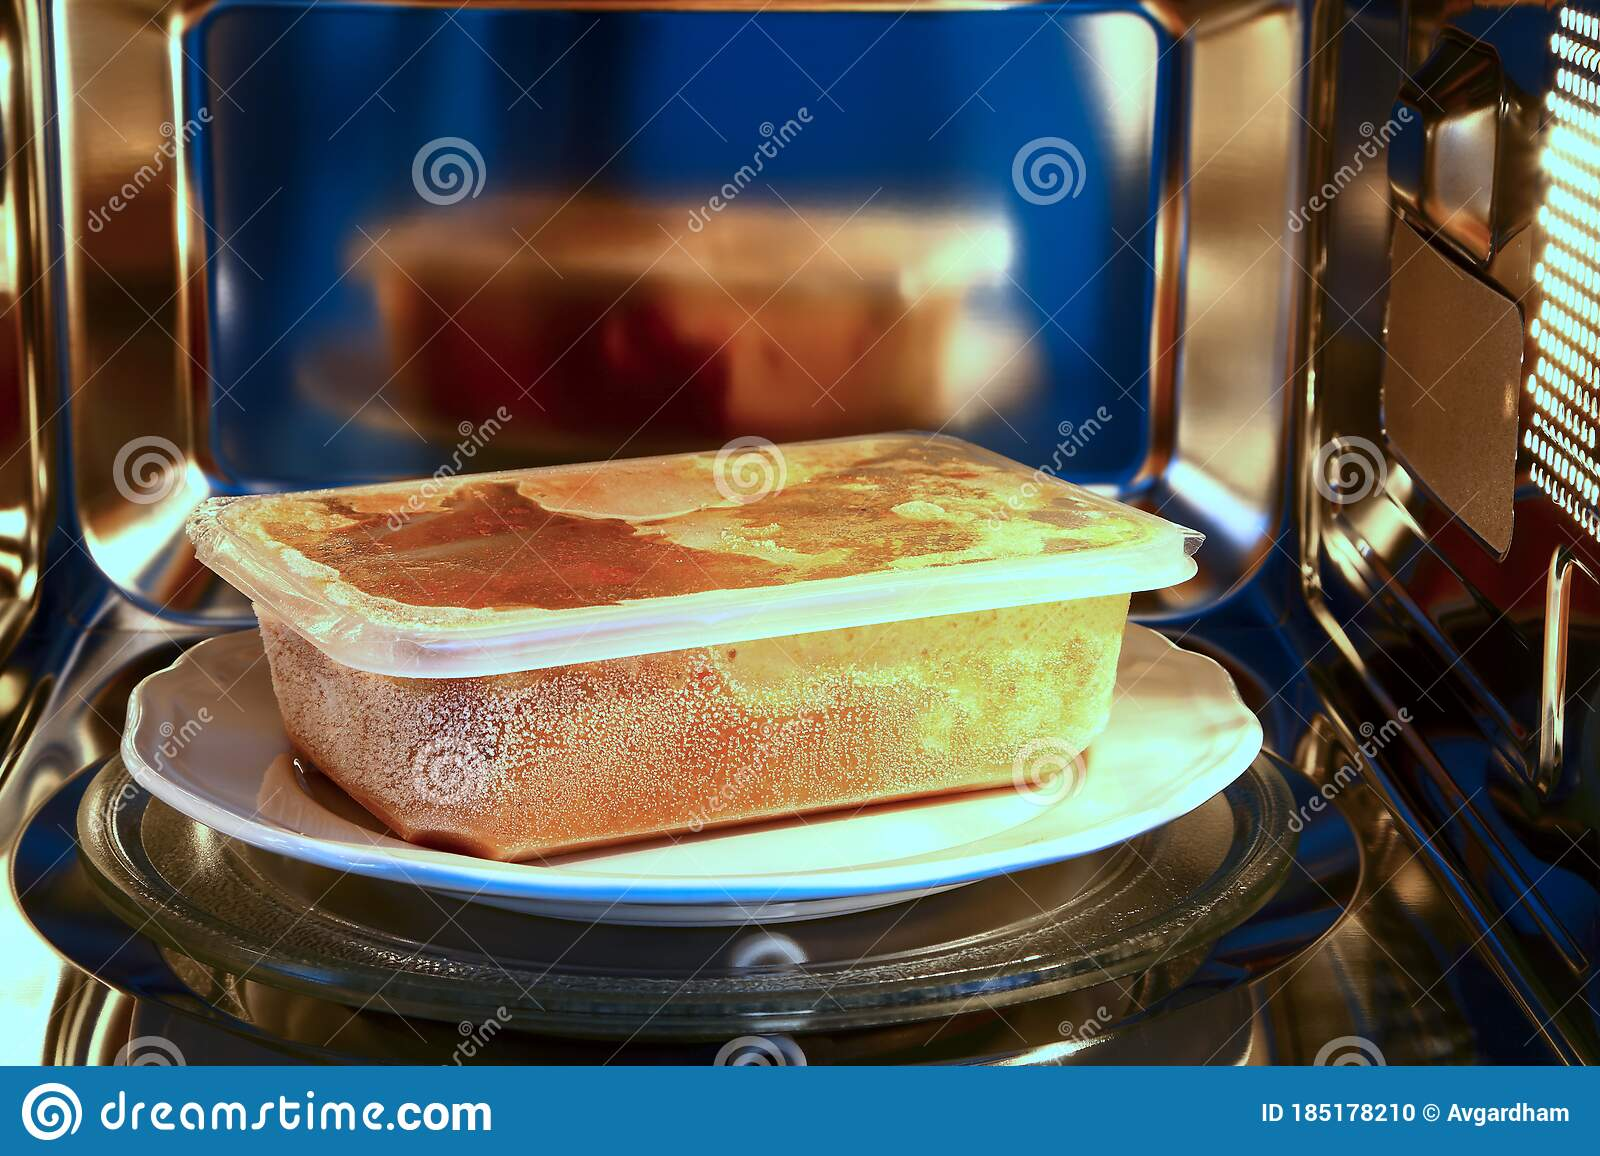 frozen curry ready meal ready to cook in a microwave oven stock photo image of cooked open 185178210